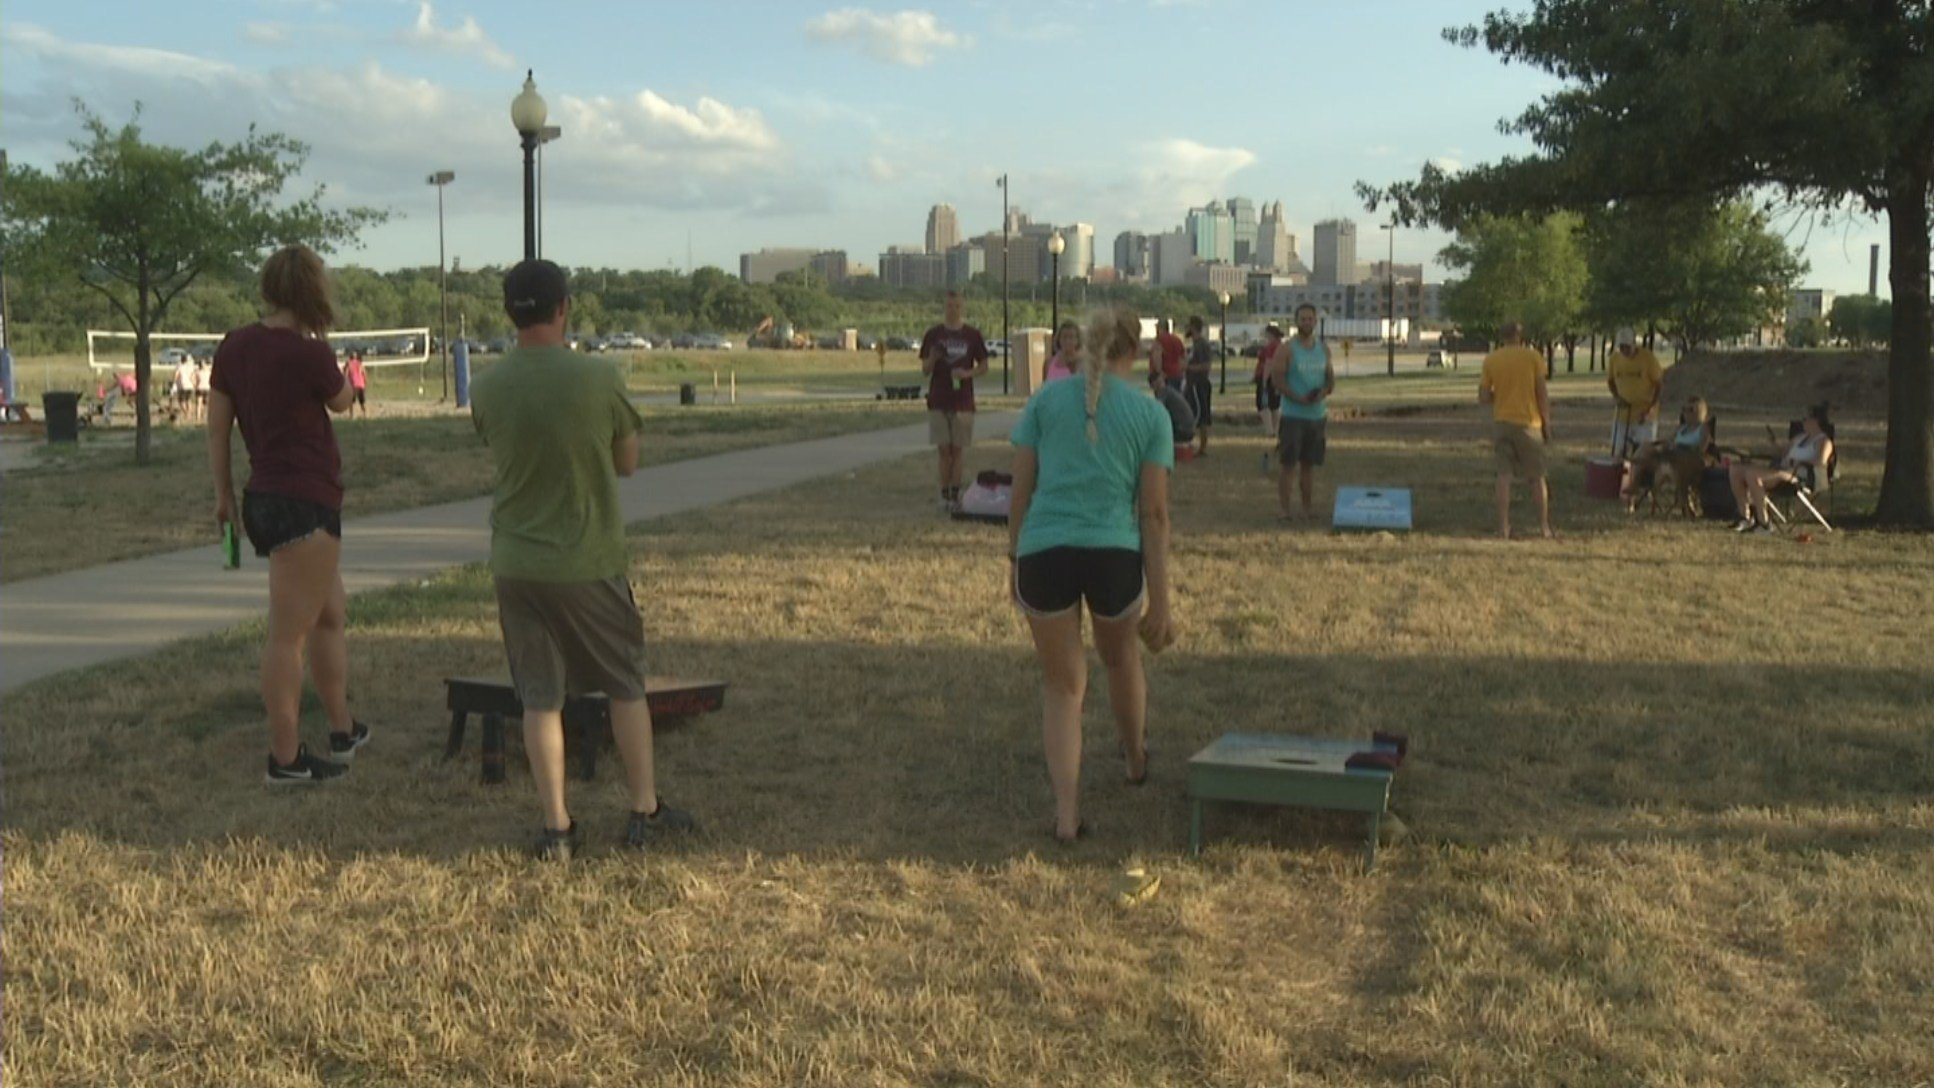 Cornhole, the popular backyard picnic game that you've likely played, is seeing a huge surge in popularity in Kansas City. (KCTV5)